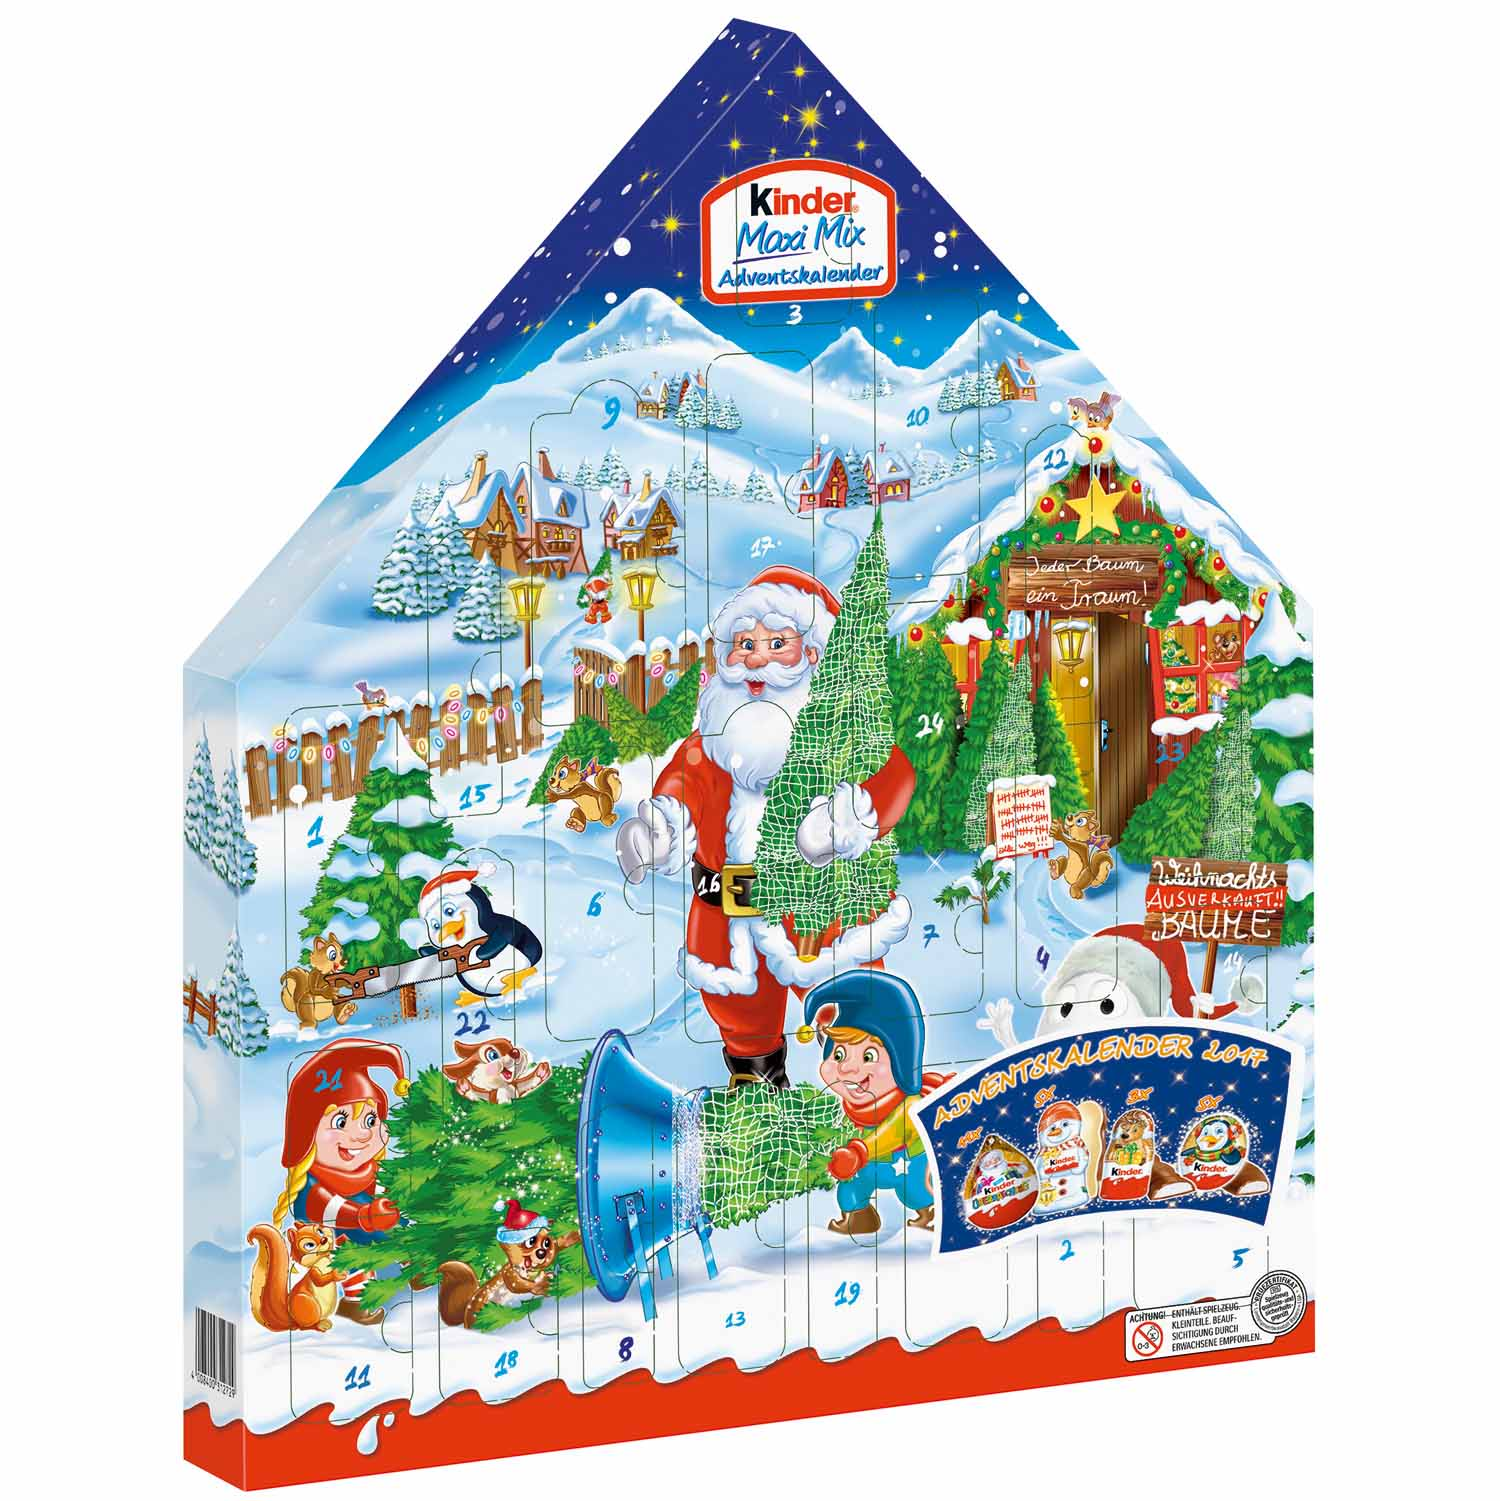 Adventskalender Bild Details About Kinder Maxi Mix 2018 Christmas Advent Calendar German Adventskalender